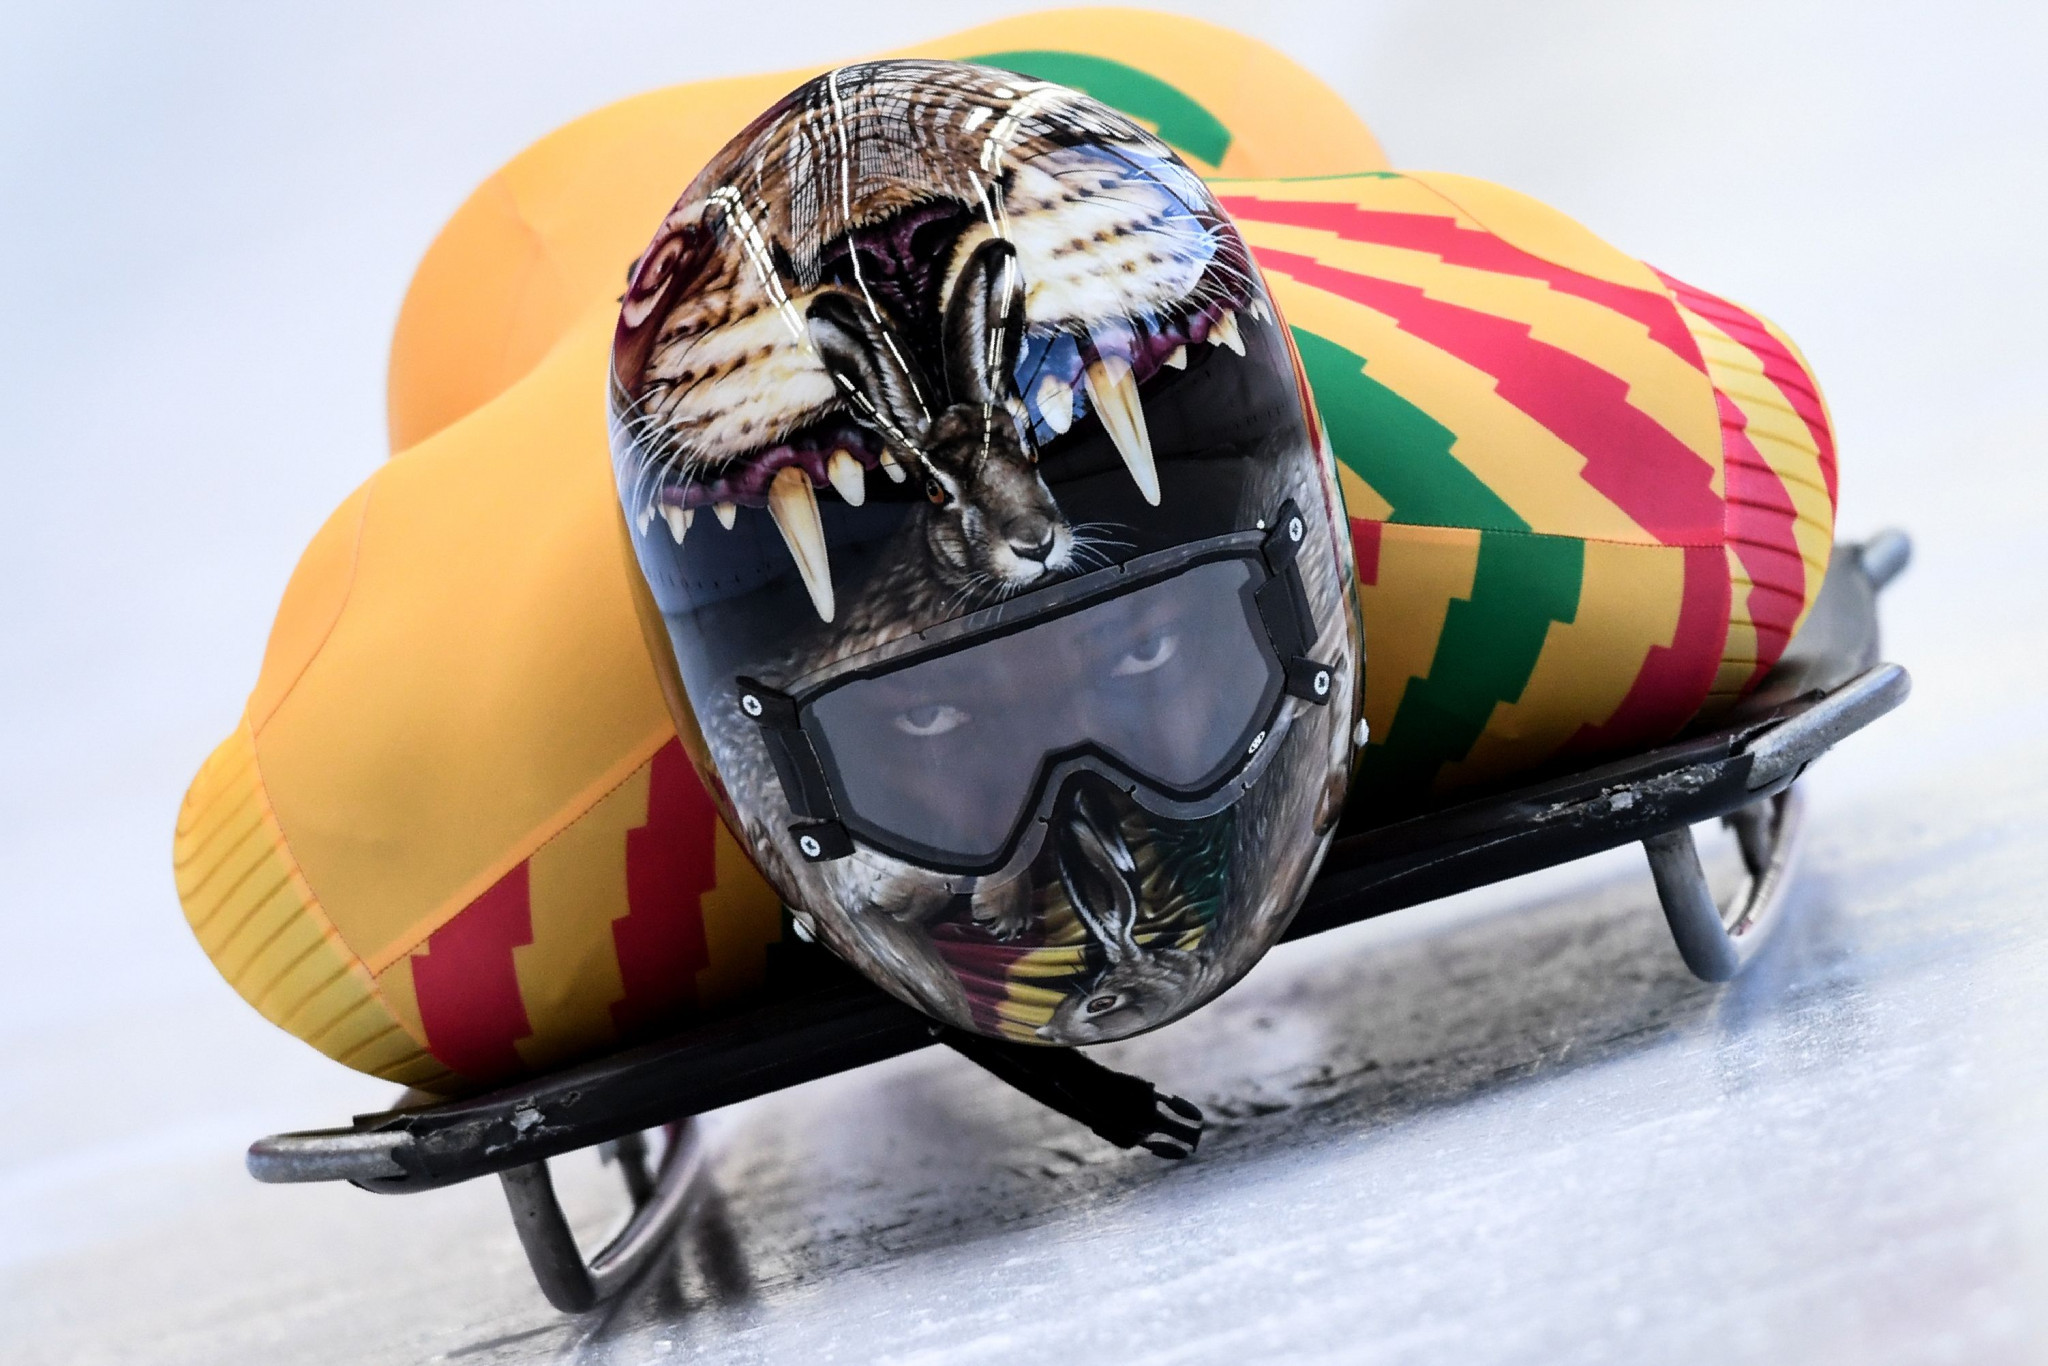 Akwasi Frimpong is hoping a spell training with the Russian skeleton team in Sochi will help him qualify for a second consecutive Winter Olympic Games at Beijing 2022 ©Getty Images